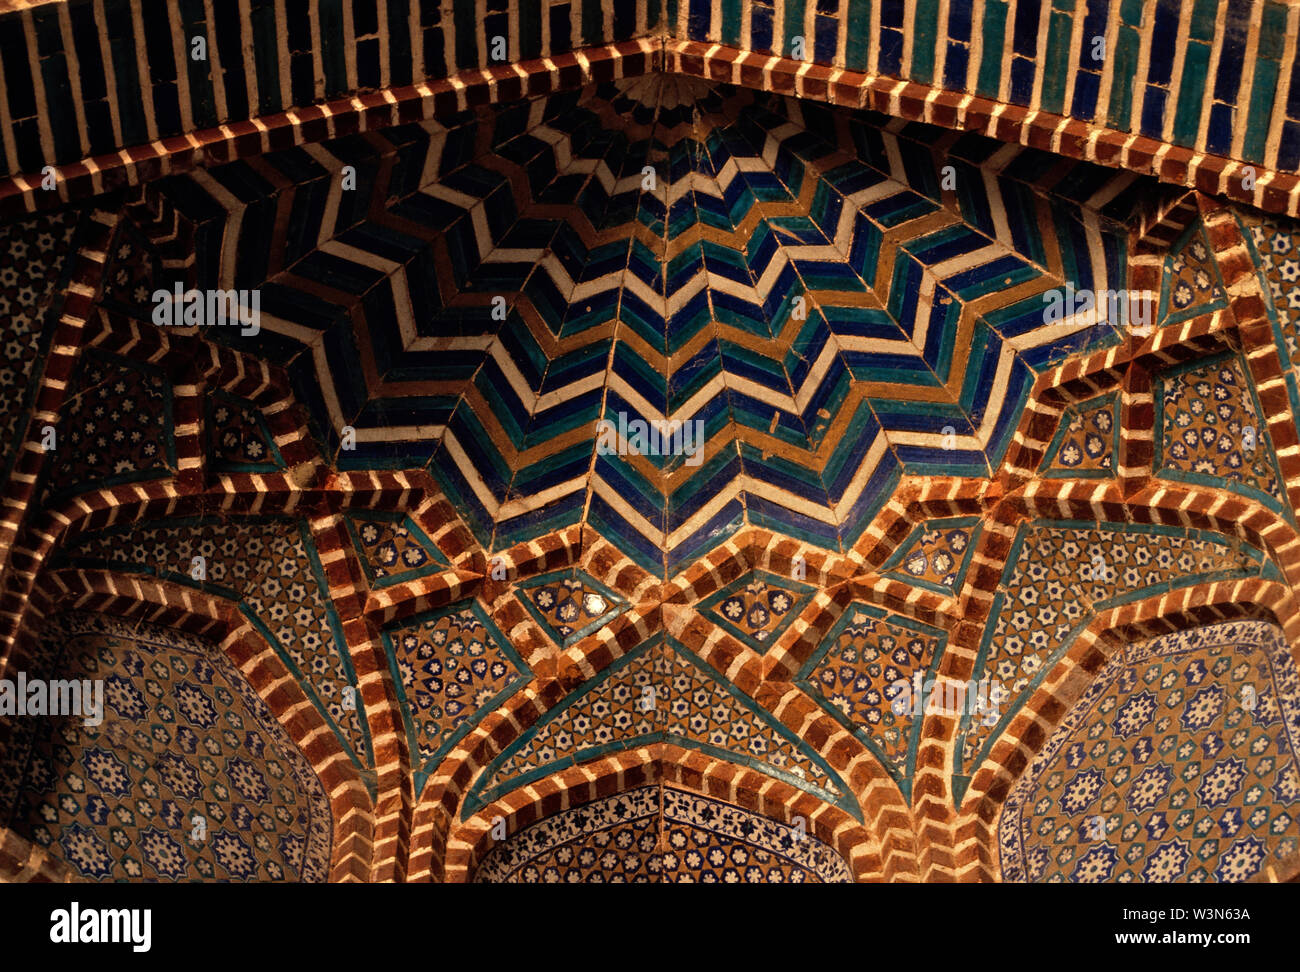 A close up of the tiles work in Shah Jehan Mosque, built by Mughal Emperor Shah Jehan, between 1644 and 1647. It is one of the magnificent examples of Mogul architecture, in the town of Thatta, in Sindh province of Pakistan. December 9, 2005. - Stock Image